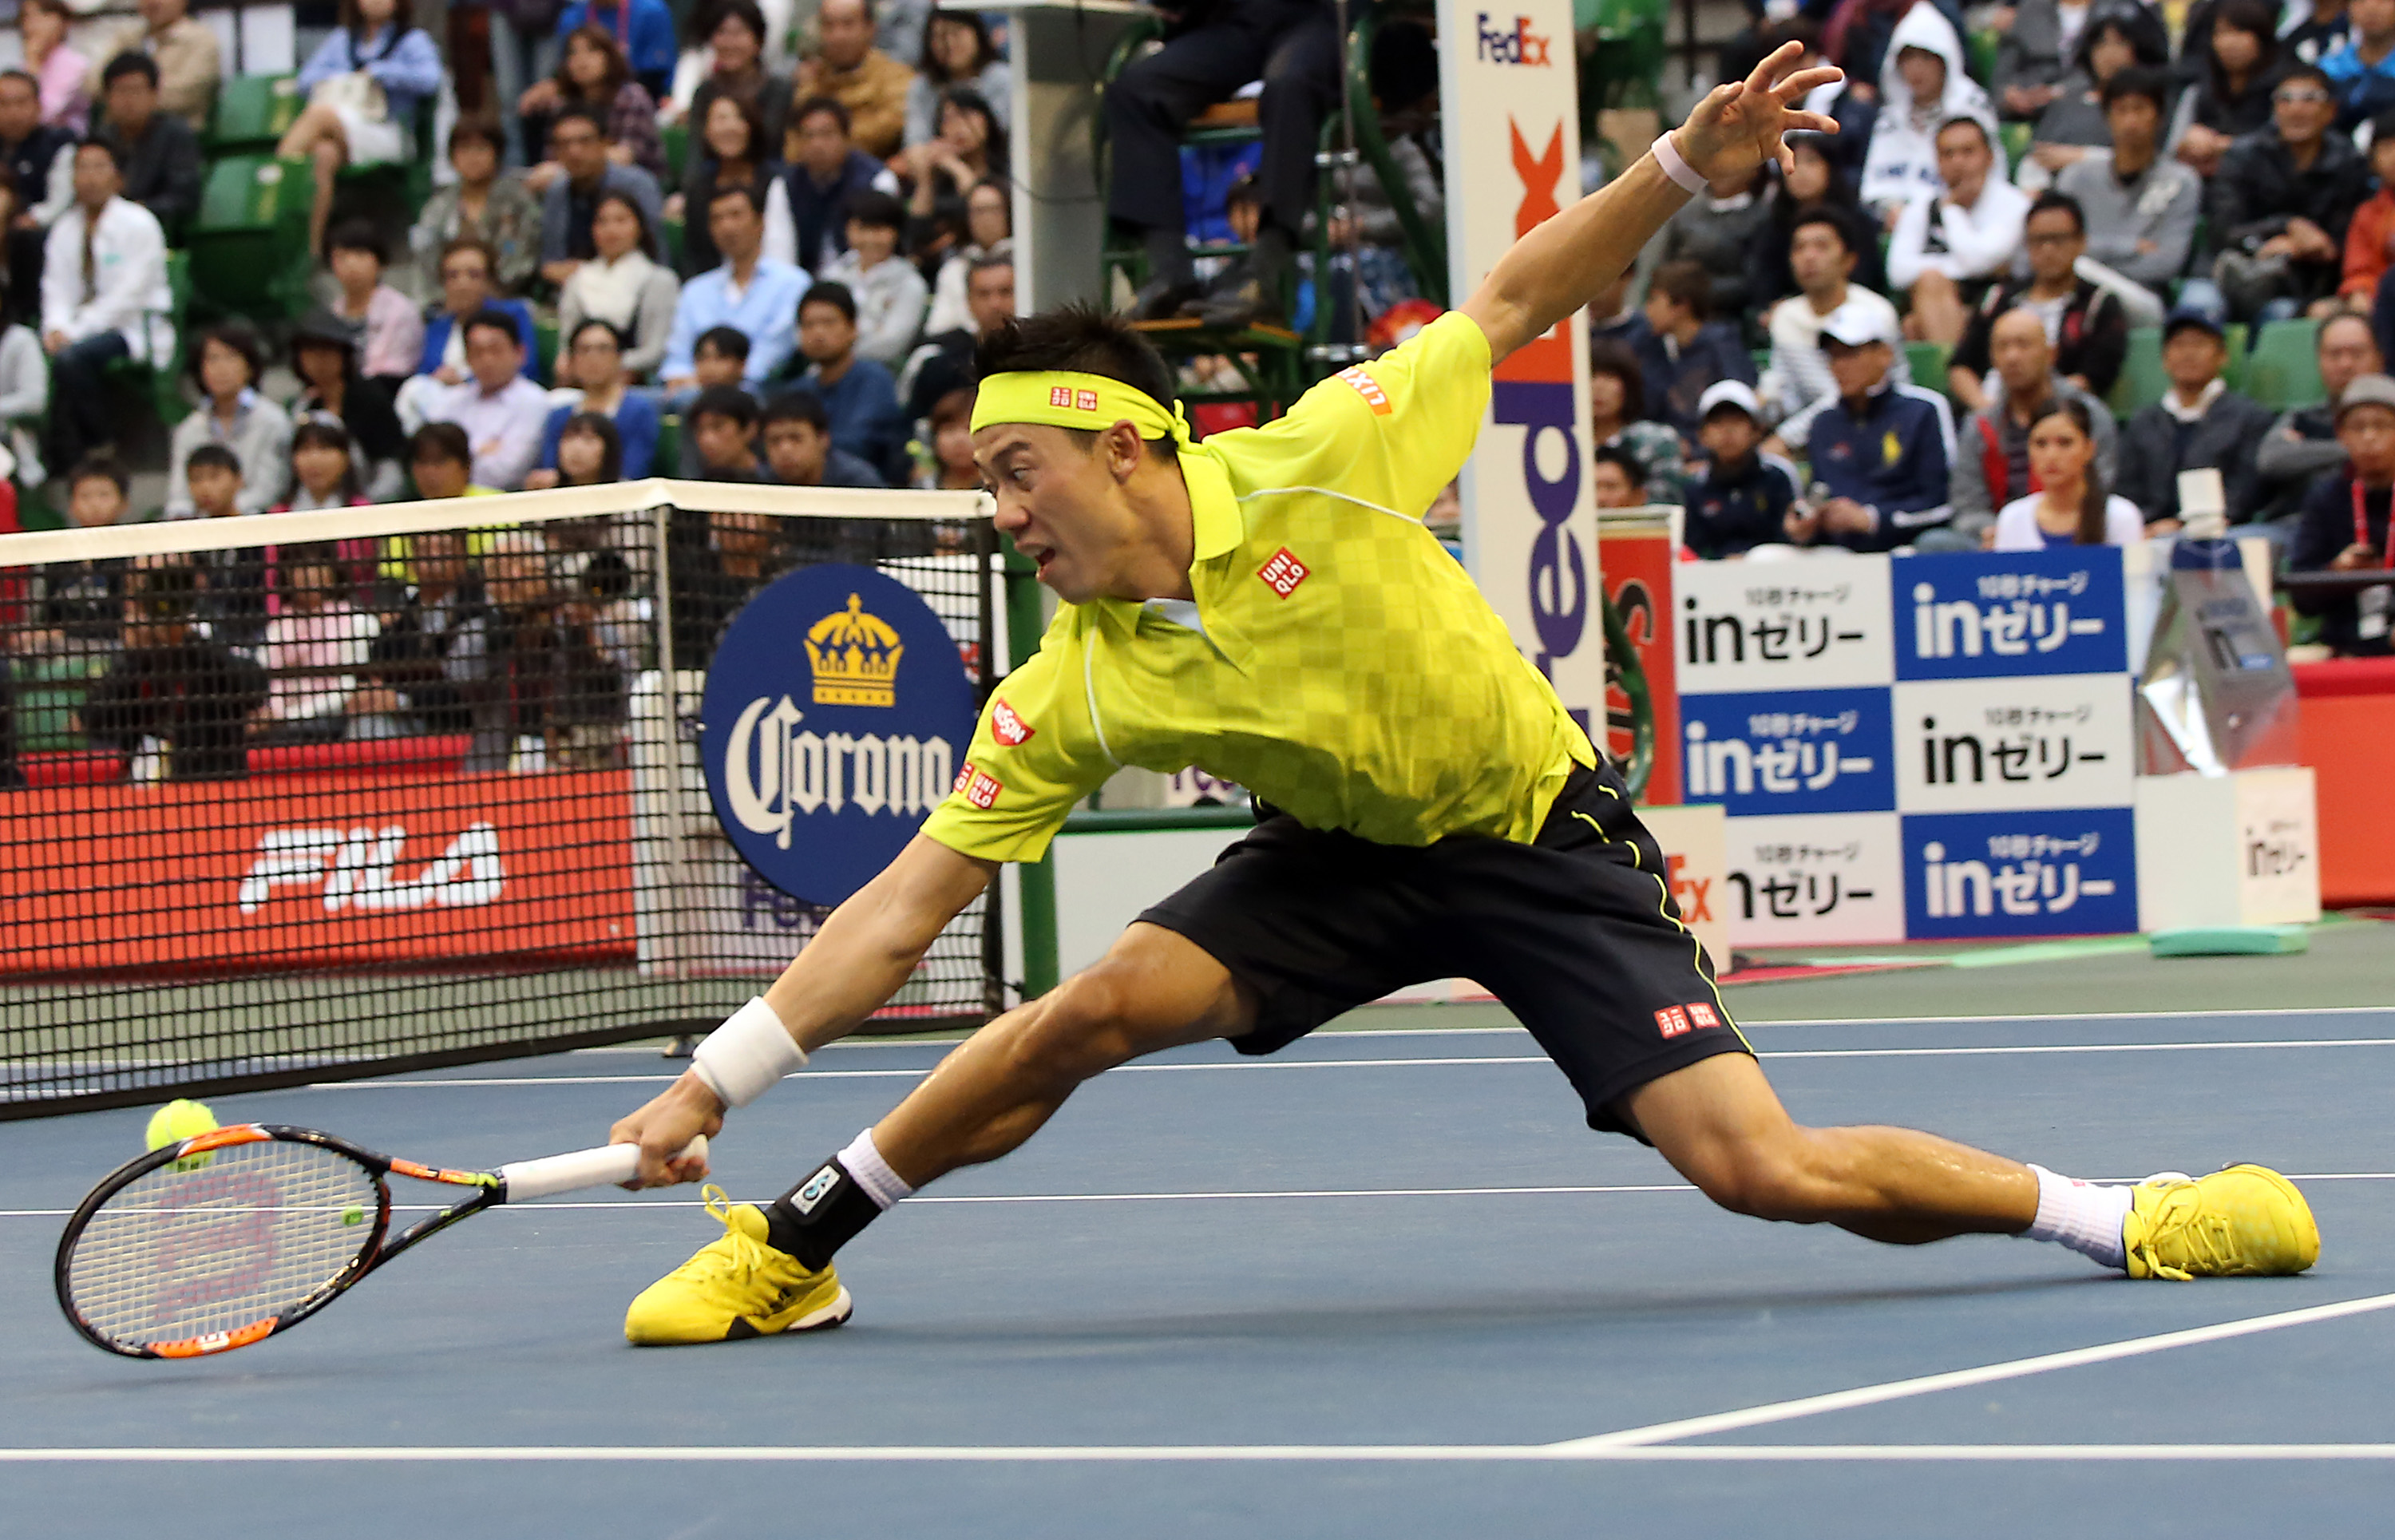 Kei Nishikori of Japan returns a shot against Benoit Paire of France during their singles semifinal match at the Japan Open men's tennis tournament in Tokyo, Saturday, Oct. 10, 2015. (AP Photo/Eugene Hoshiko)